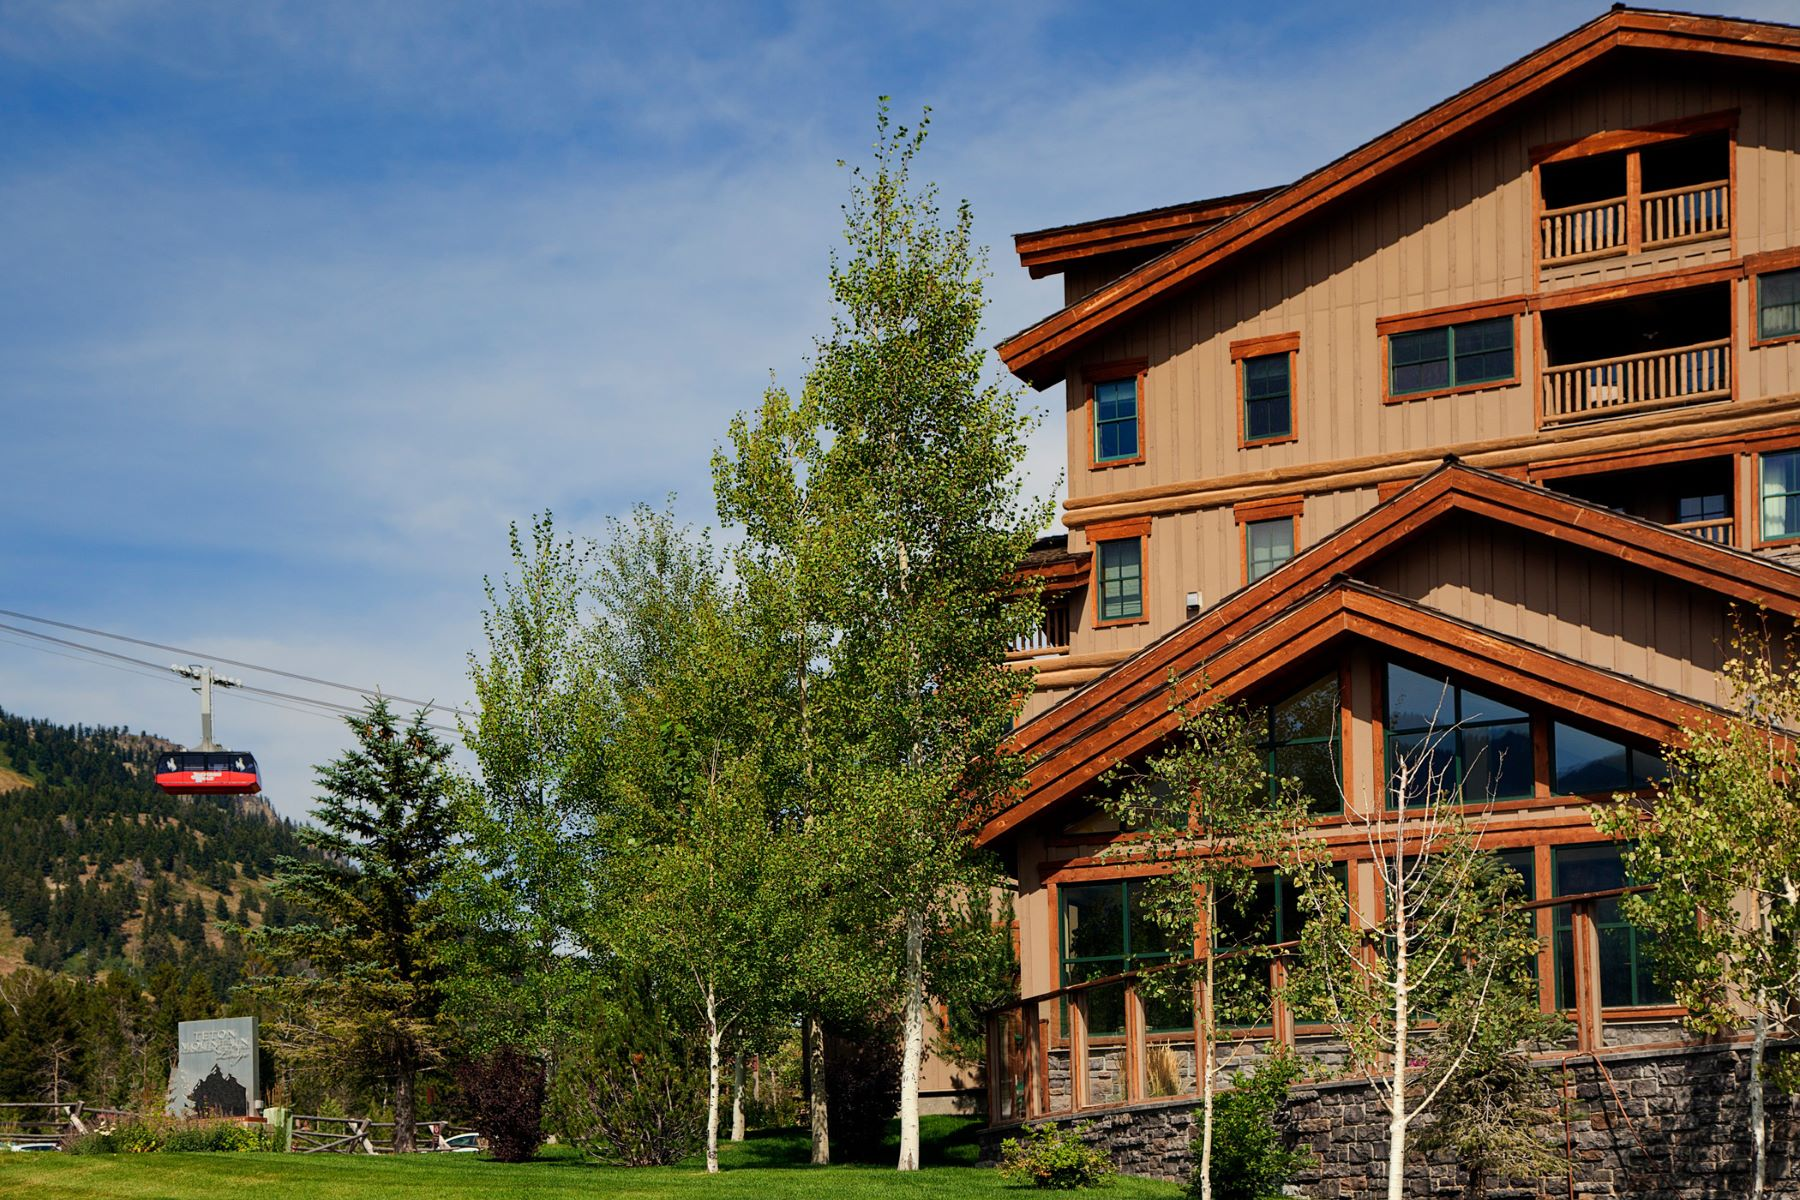 Condominio por un Venta en Slopeside in Teton Village 3385 W. Village Drive unit 327/329, Teton Village, Wyoming, 83025 Jackson Hole, Estados Unidos